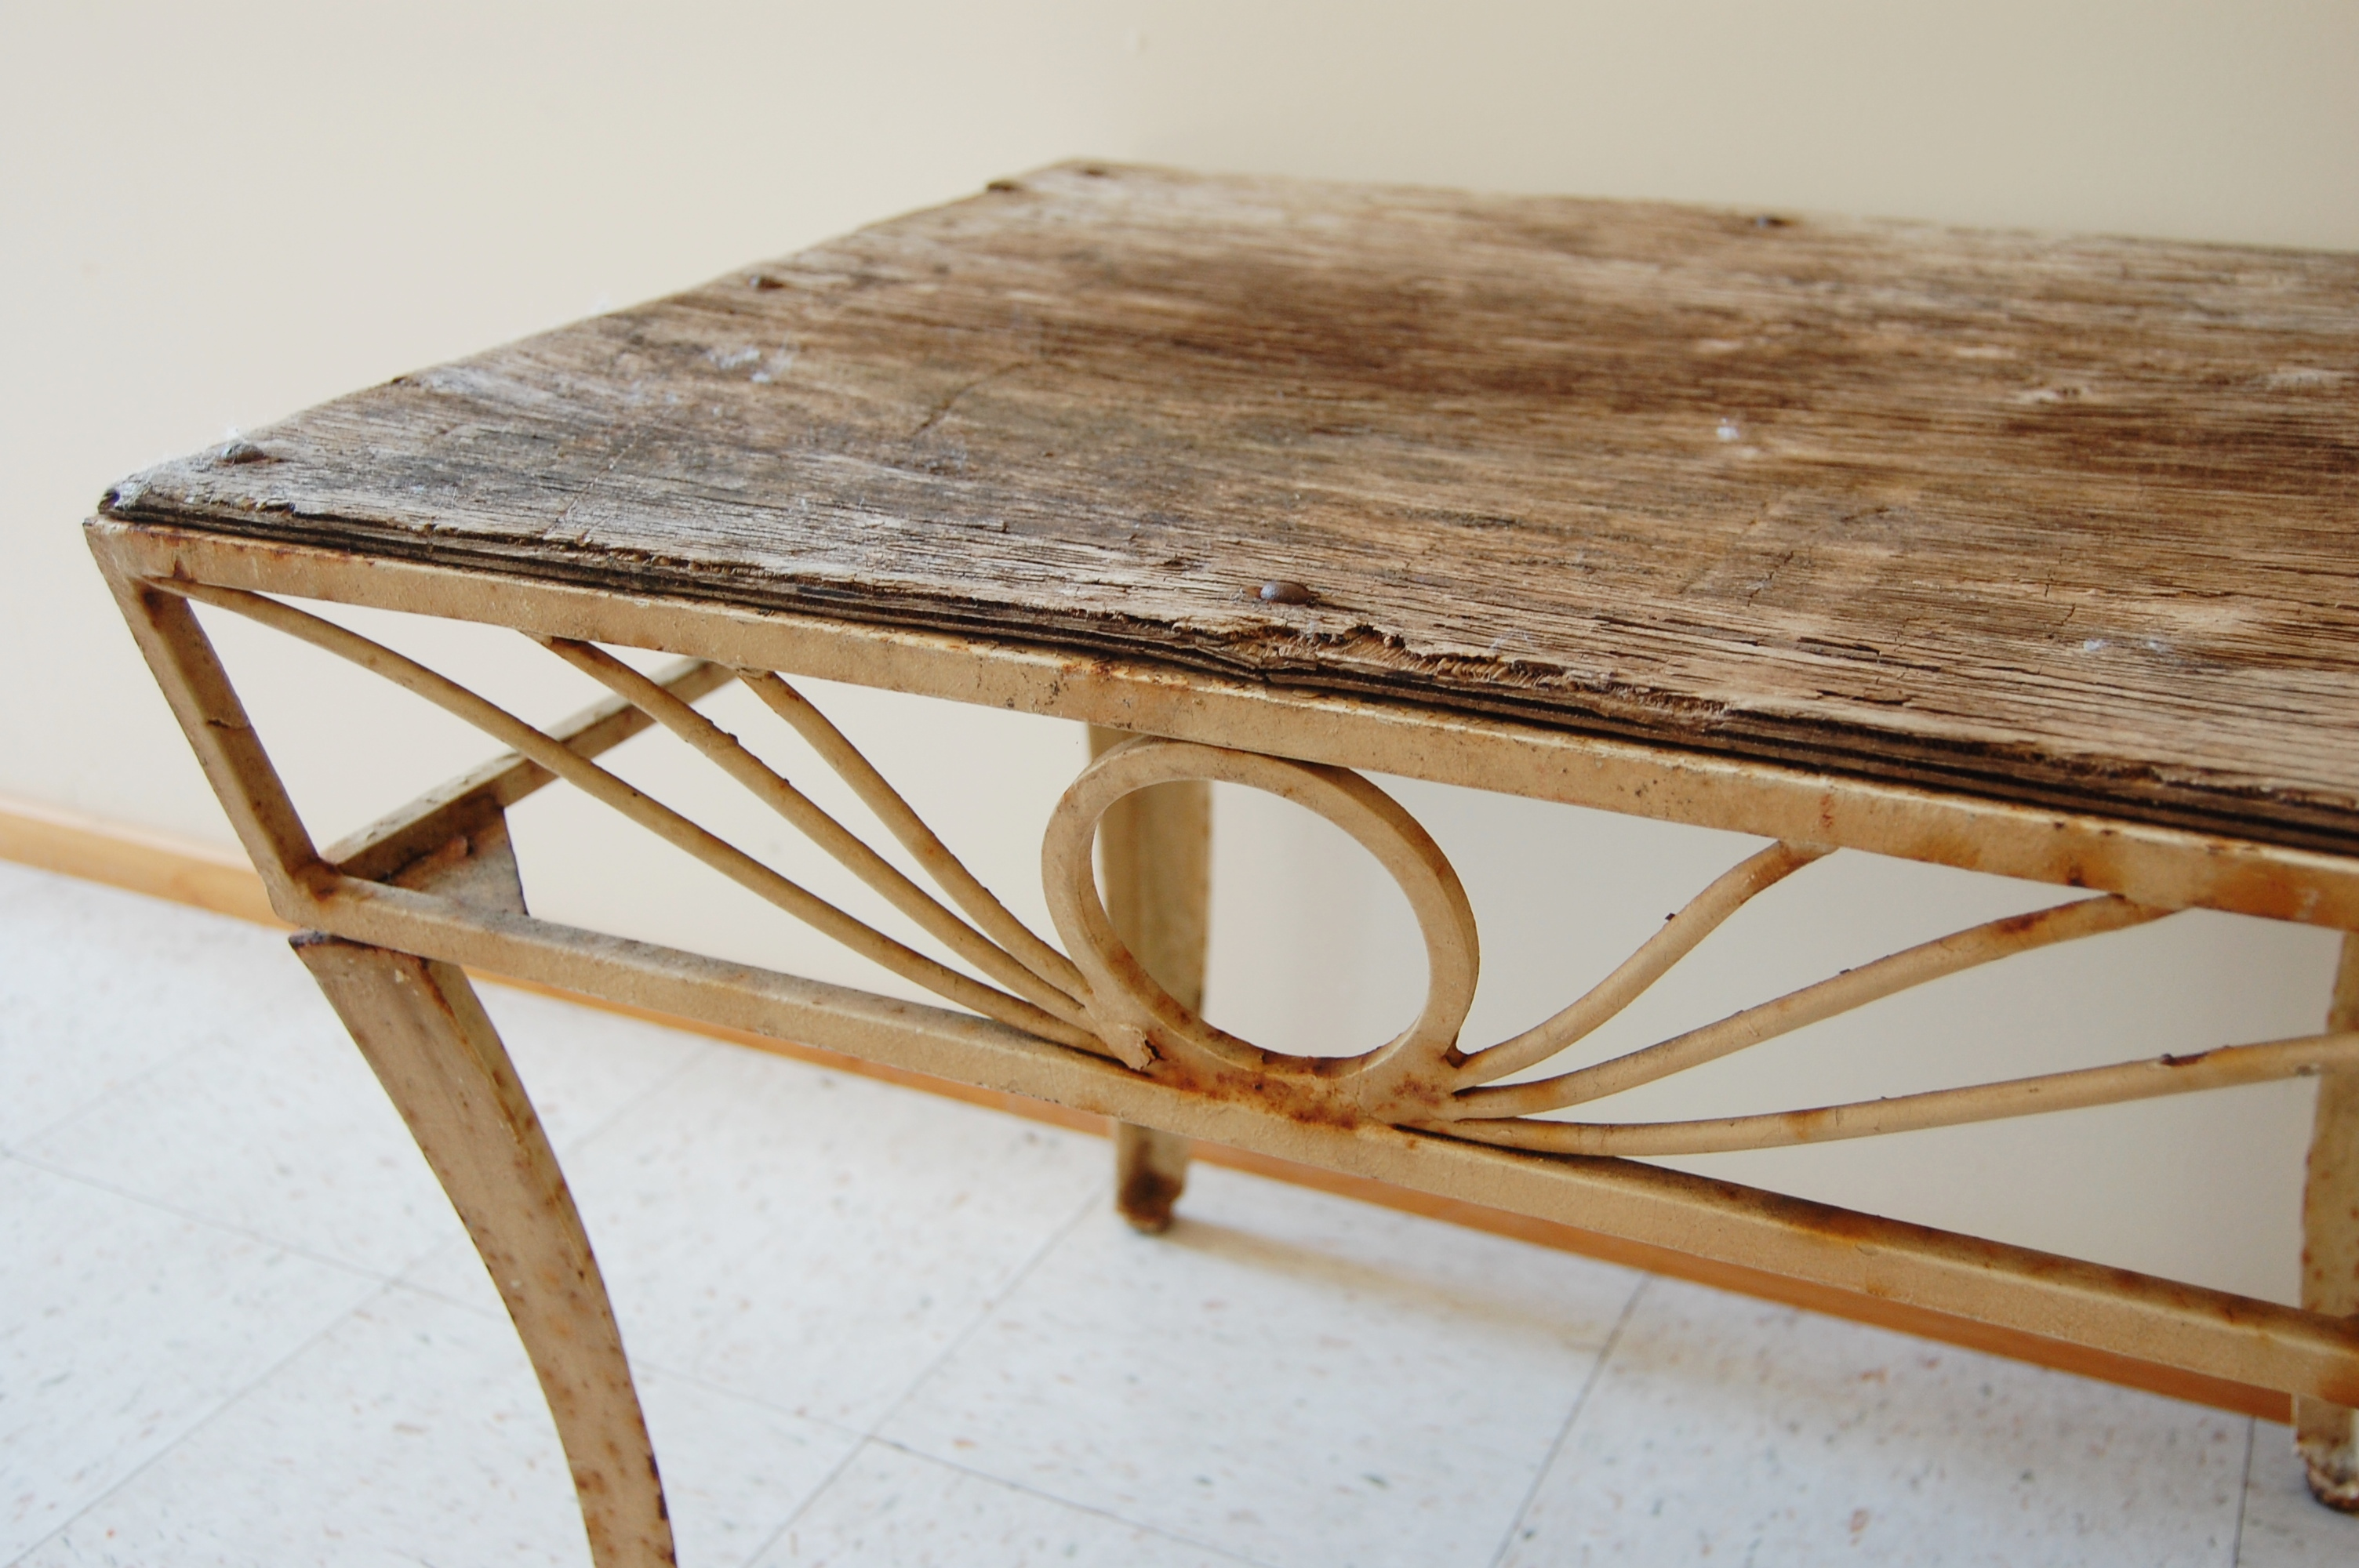 Rustic Metal Coffee Table With Wood Top Marinus Home Online Store Powered By Storenvy